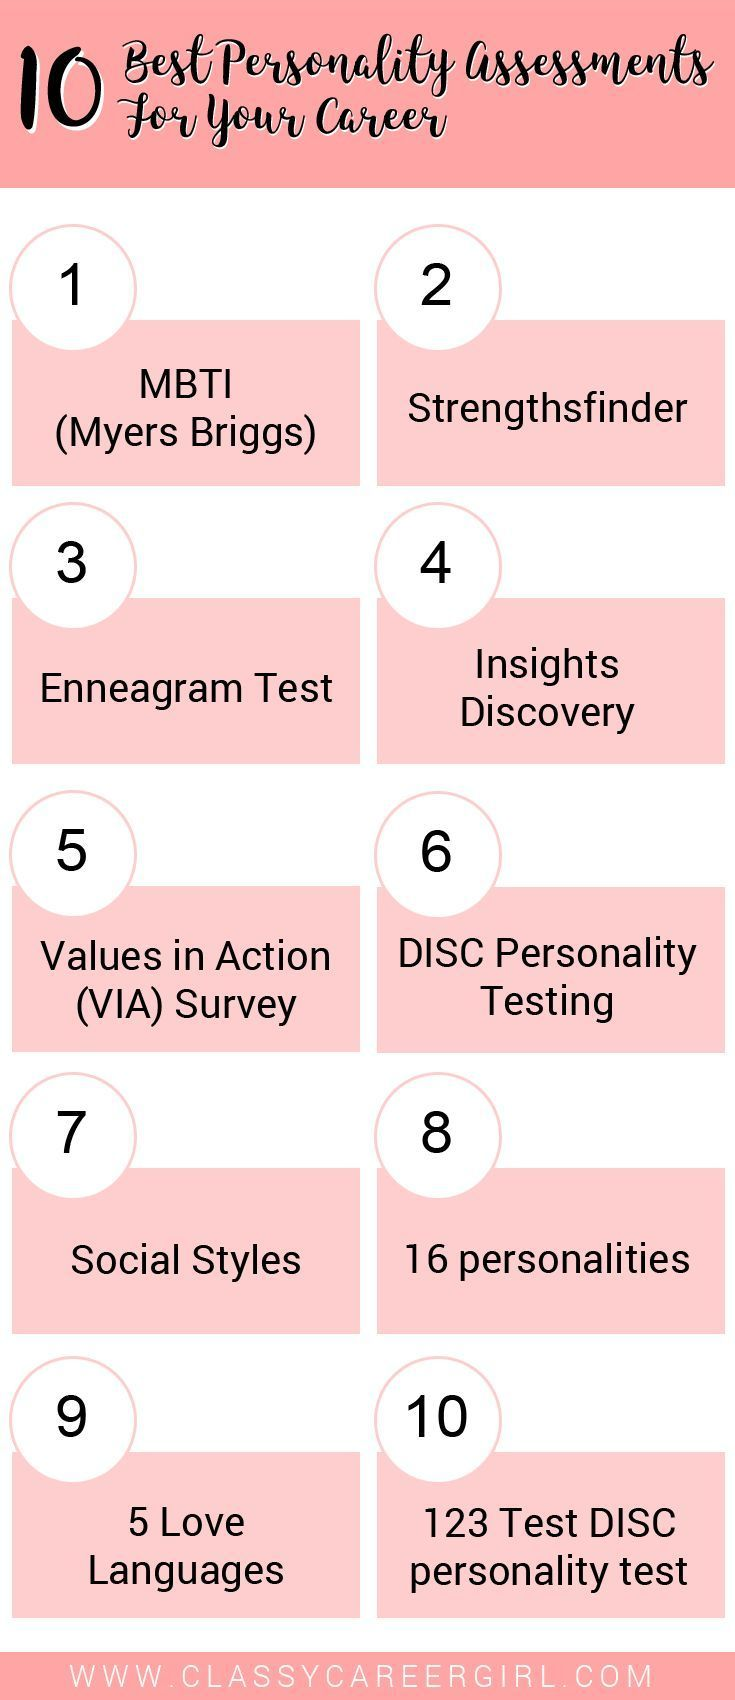 personality assessment Employment personality inventory- online psychometric assessment of personality test to assess and identify key personality traits with mettl personality inventory - used by 1800+ clients nationally and internationally - validated on 500,000 assessment takers - free trial - request a demo - mettl.